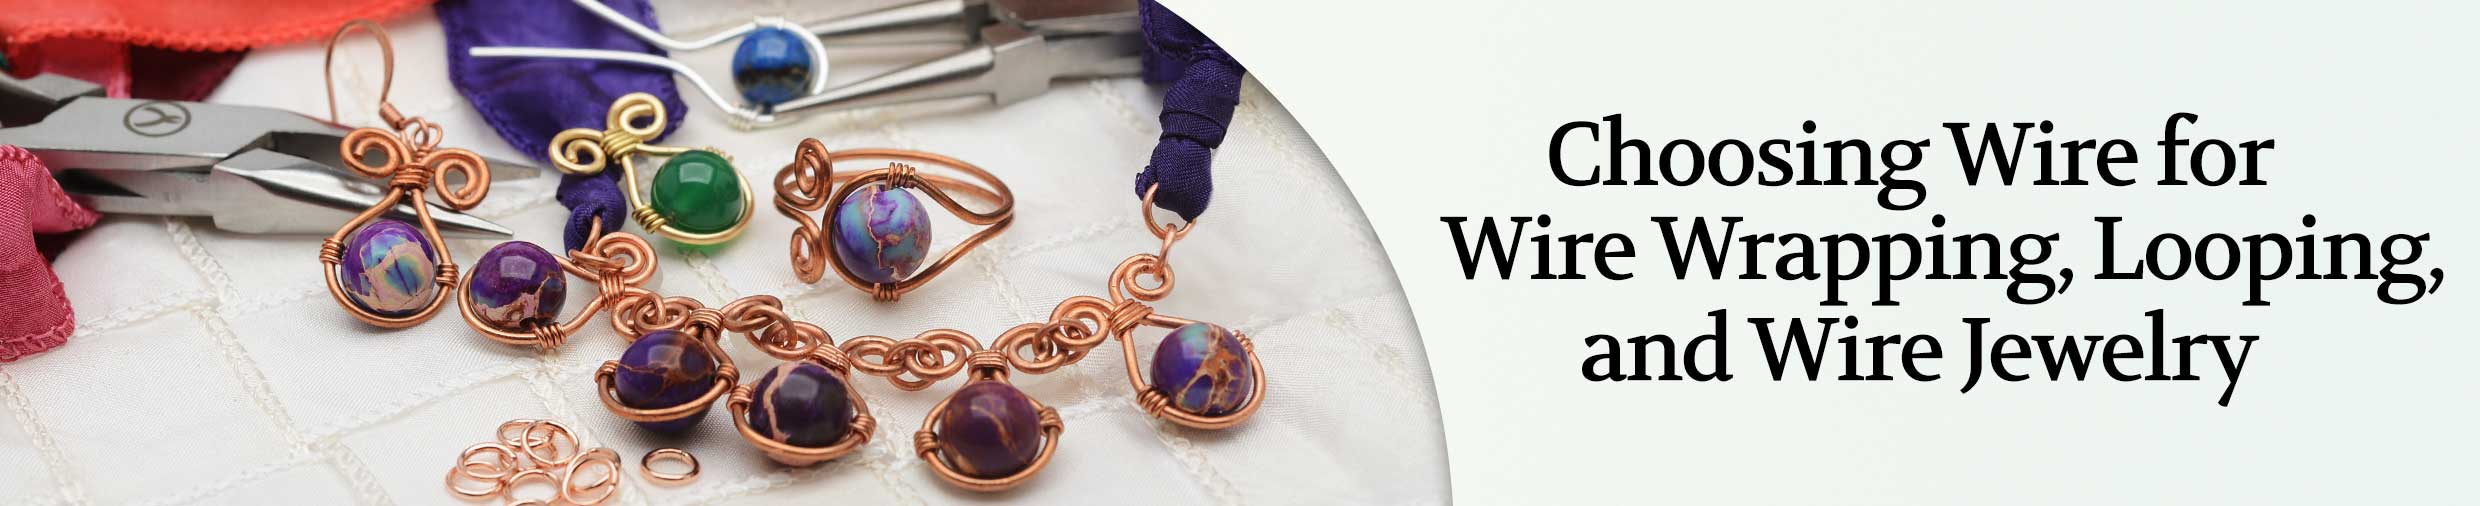 Product Guide: Choosing Wire for Wire Wrapping, Wire Looping, and Wire Jewelry